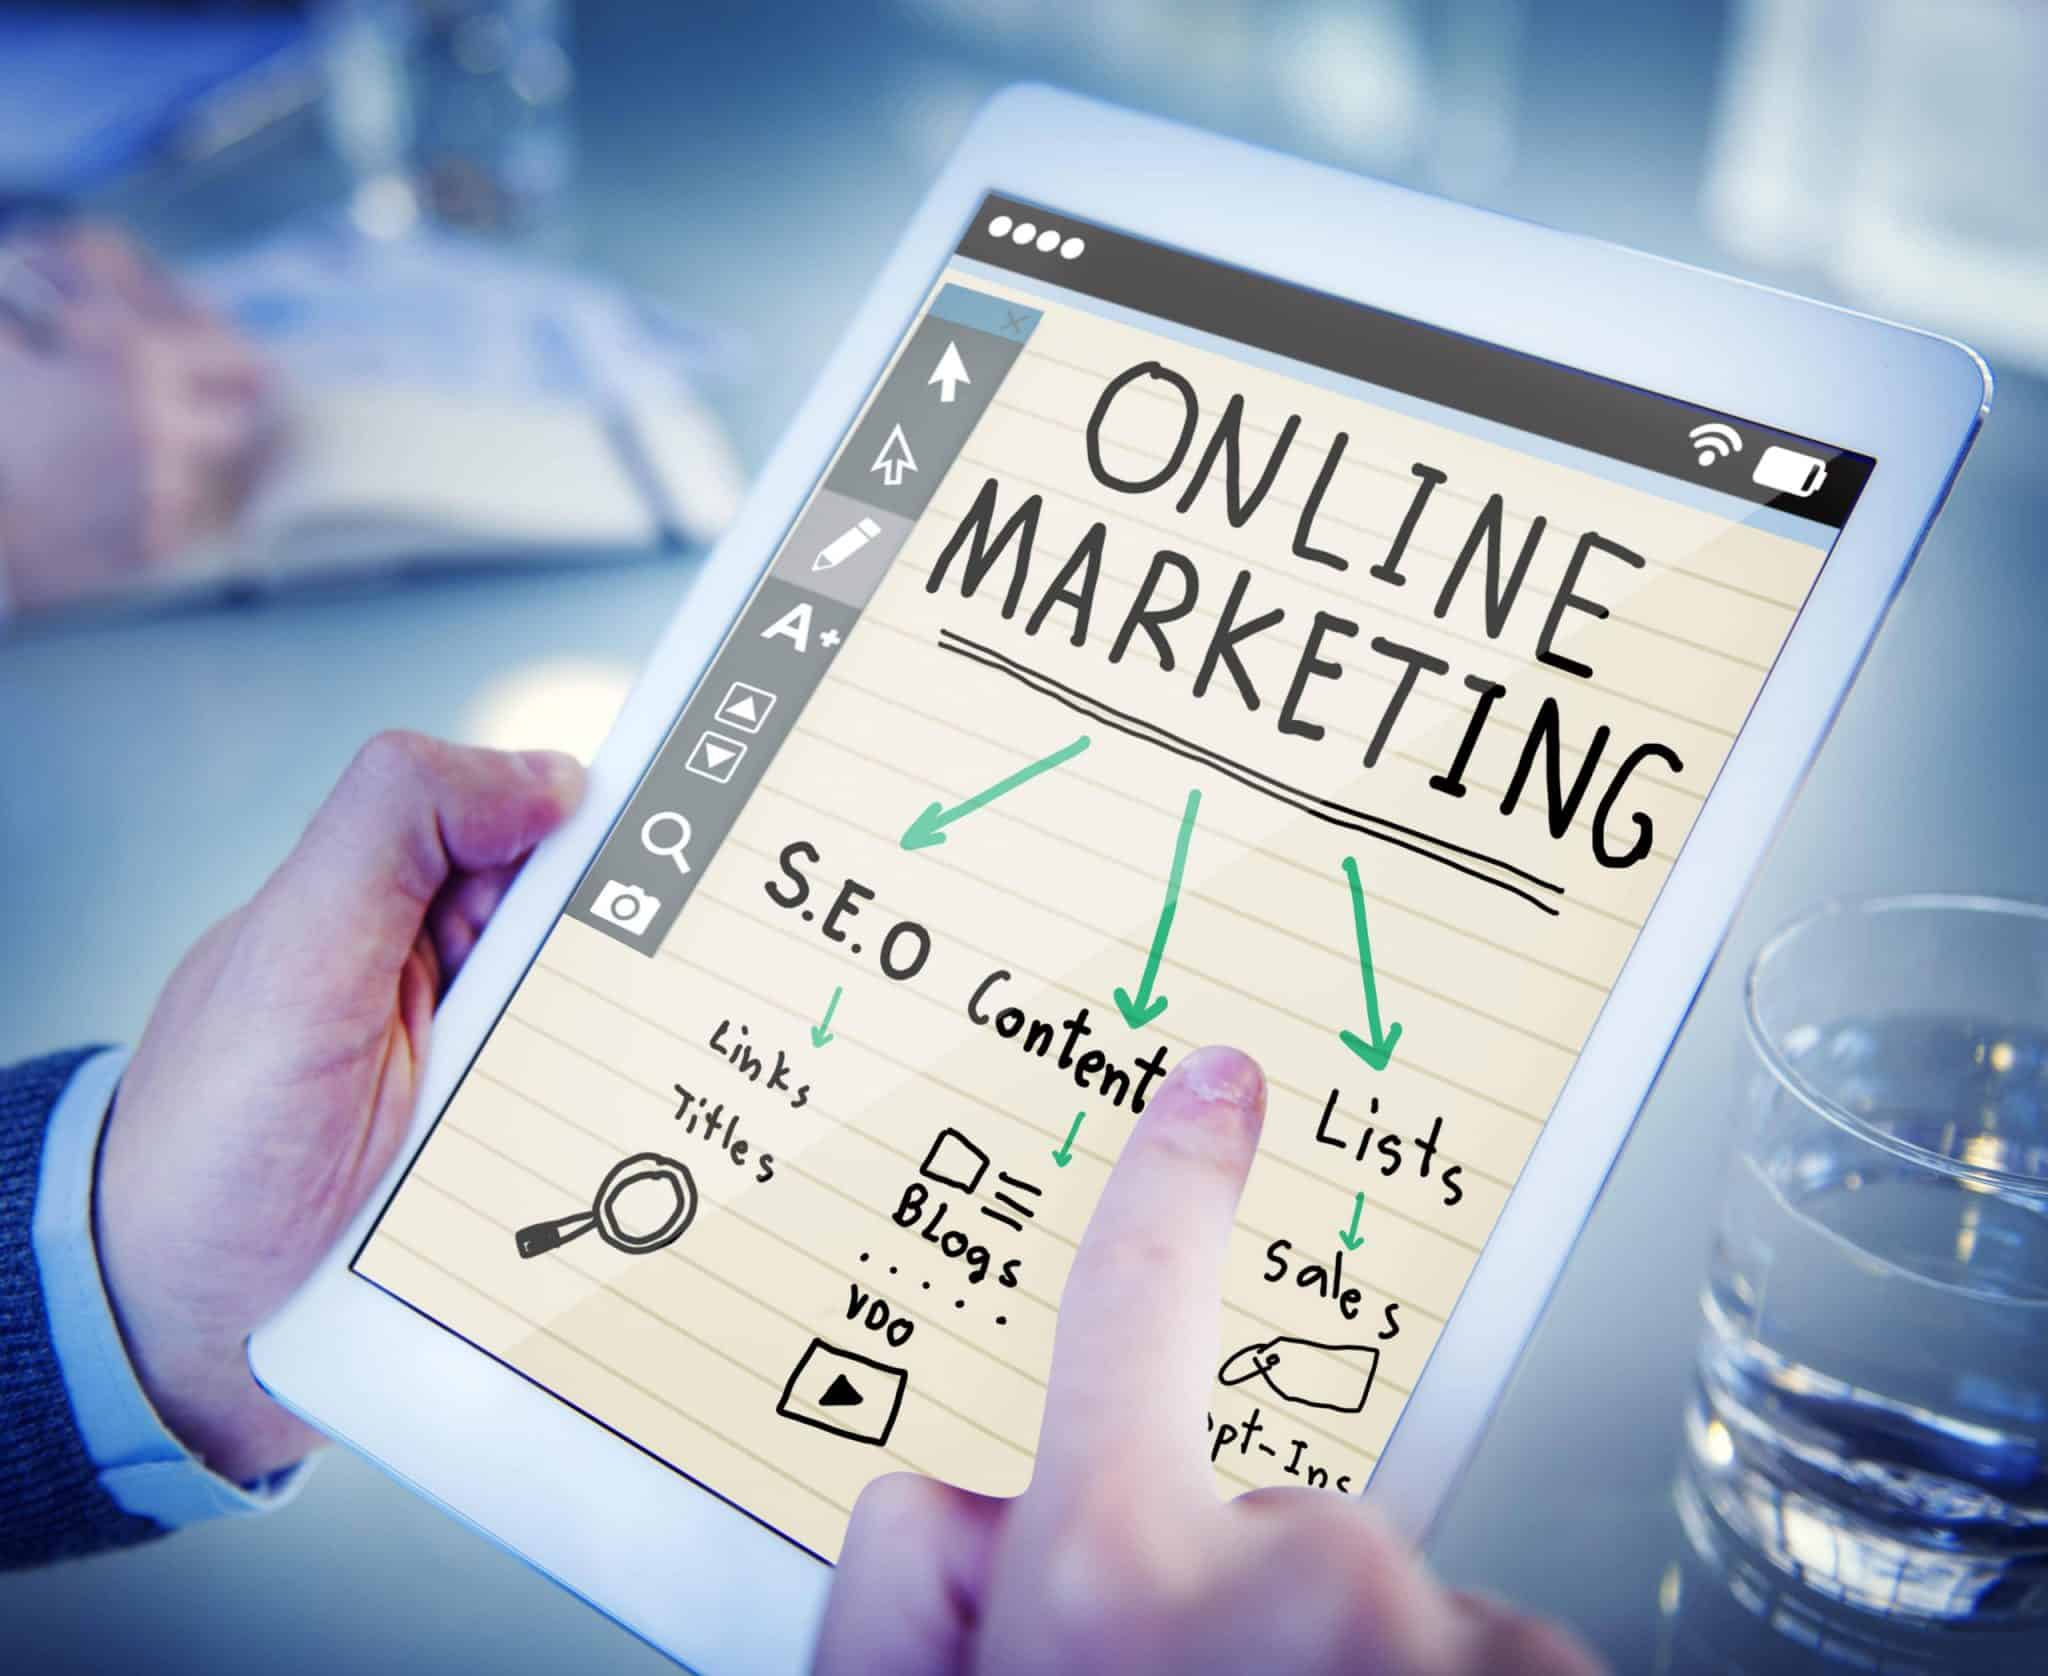 ourservices-copyrighting-online-marketing